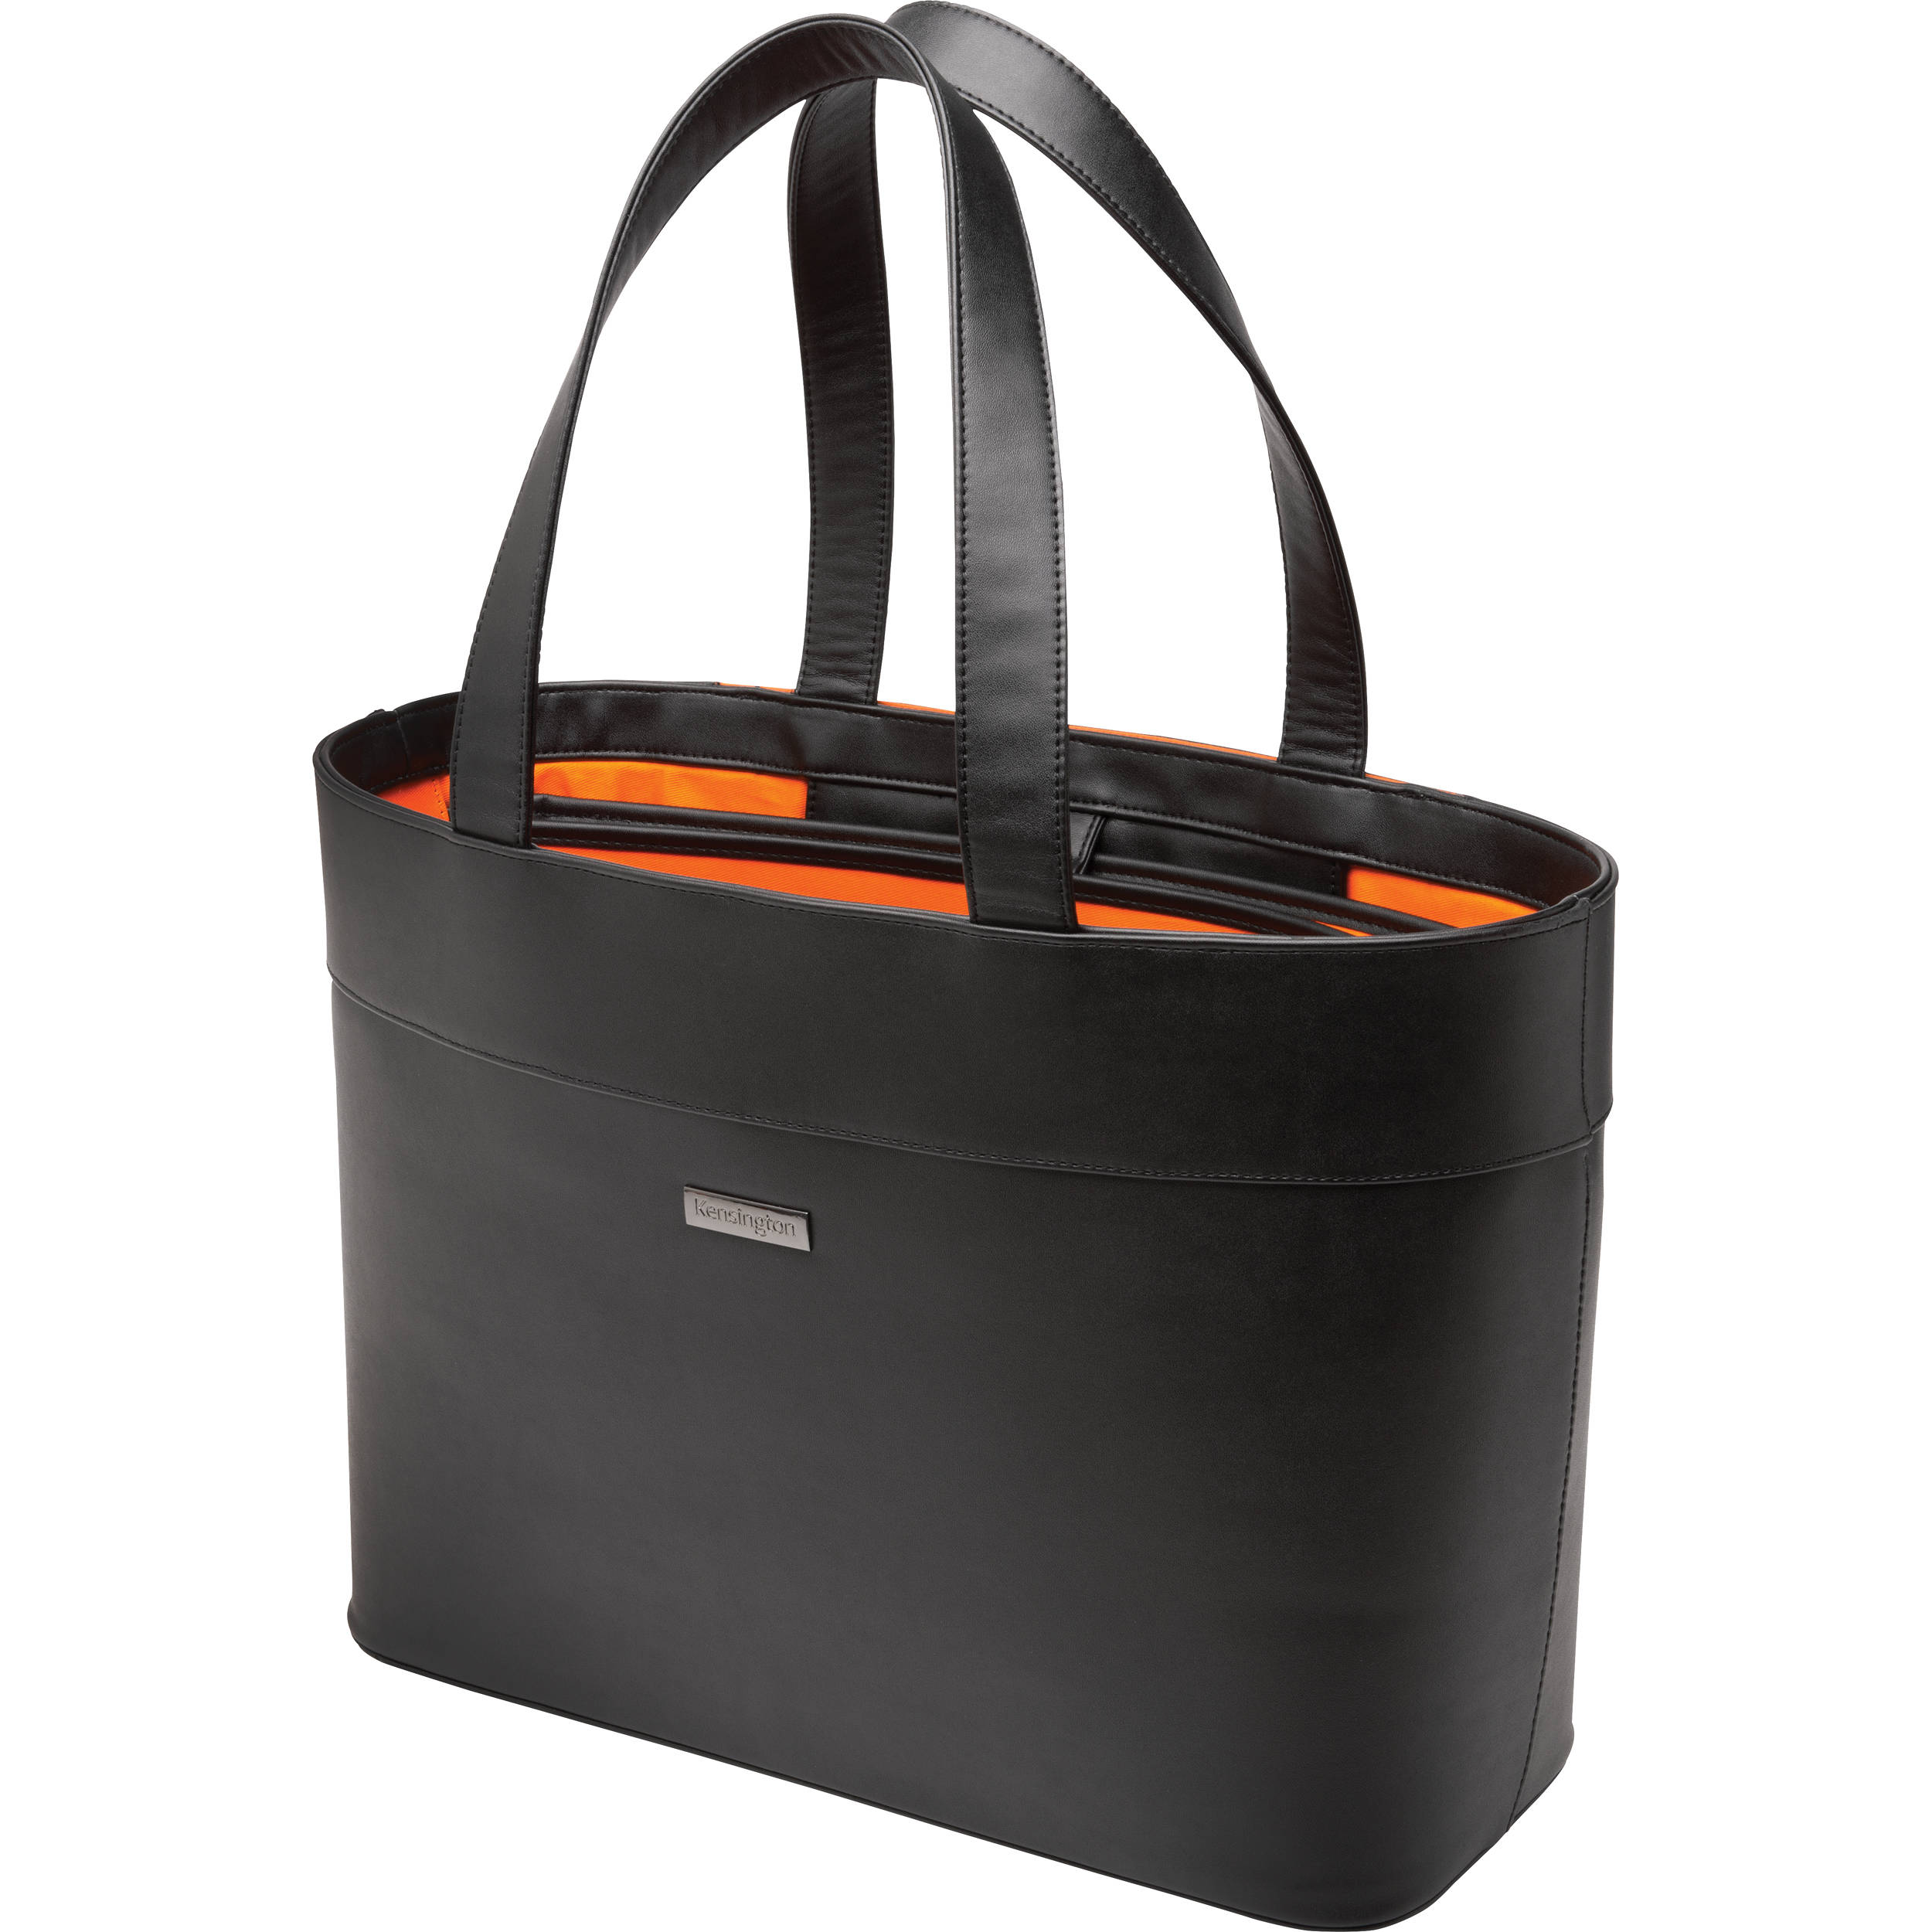 Kensington Lm650 Jacqueline Tote For 15 6 Quot Laptop K62614ww